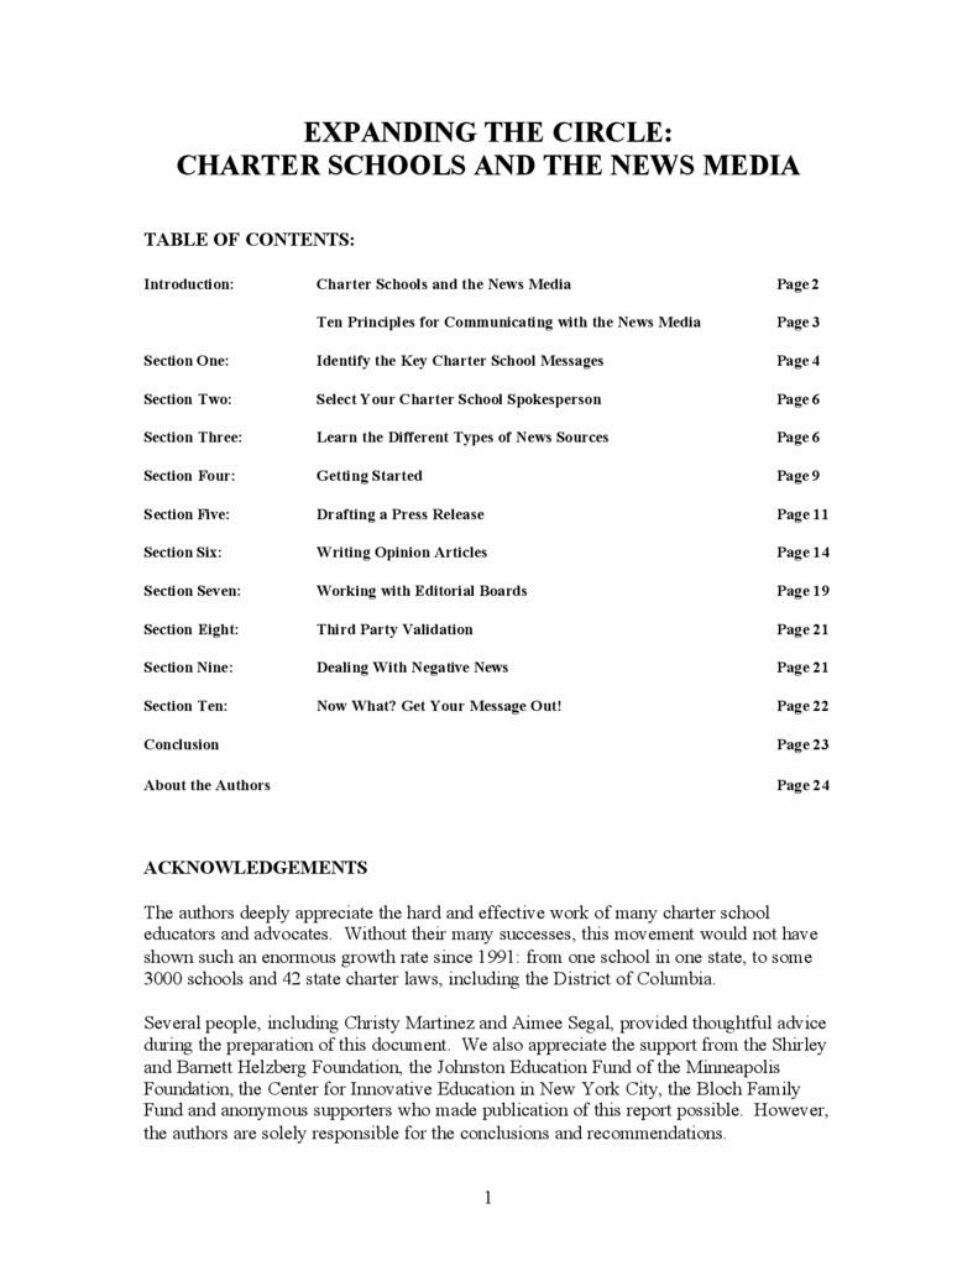 thumbnail of EXPANDING THE CIRCLE: CHARTER SCHOOLS AND THE NEWS MEDIA